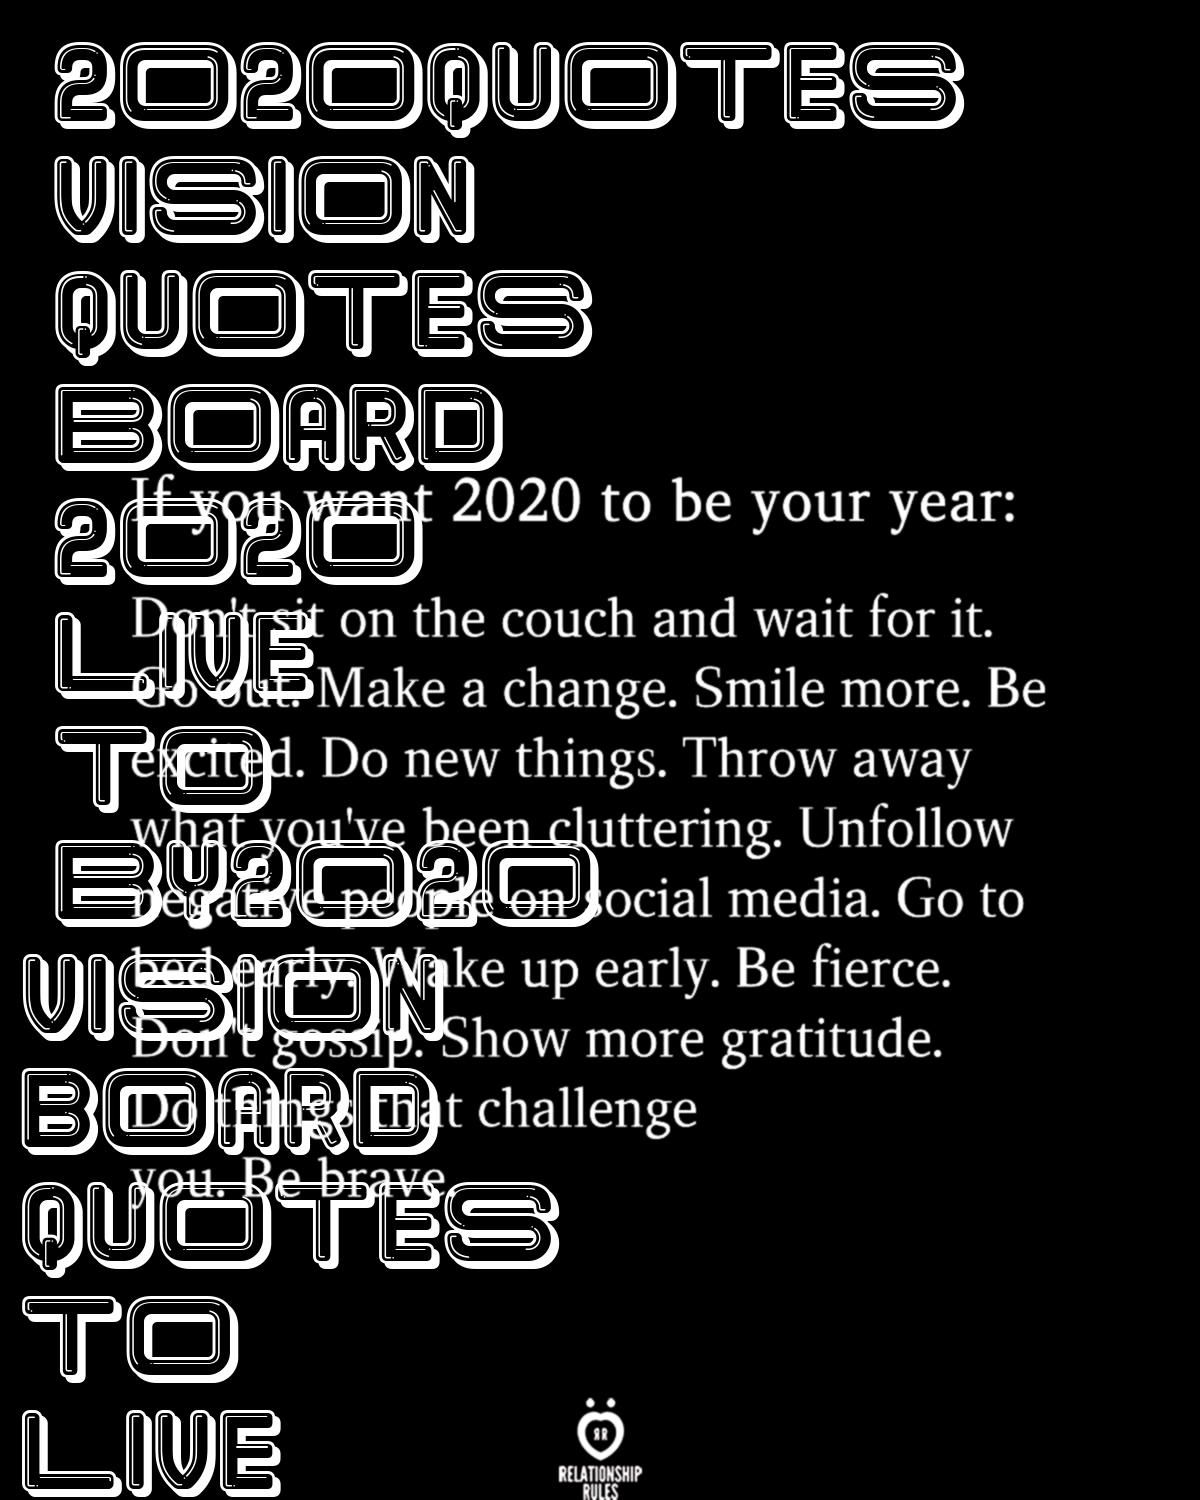 2020quotes vision quotes board 2020 live to by2020